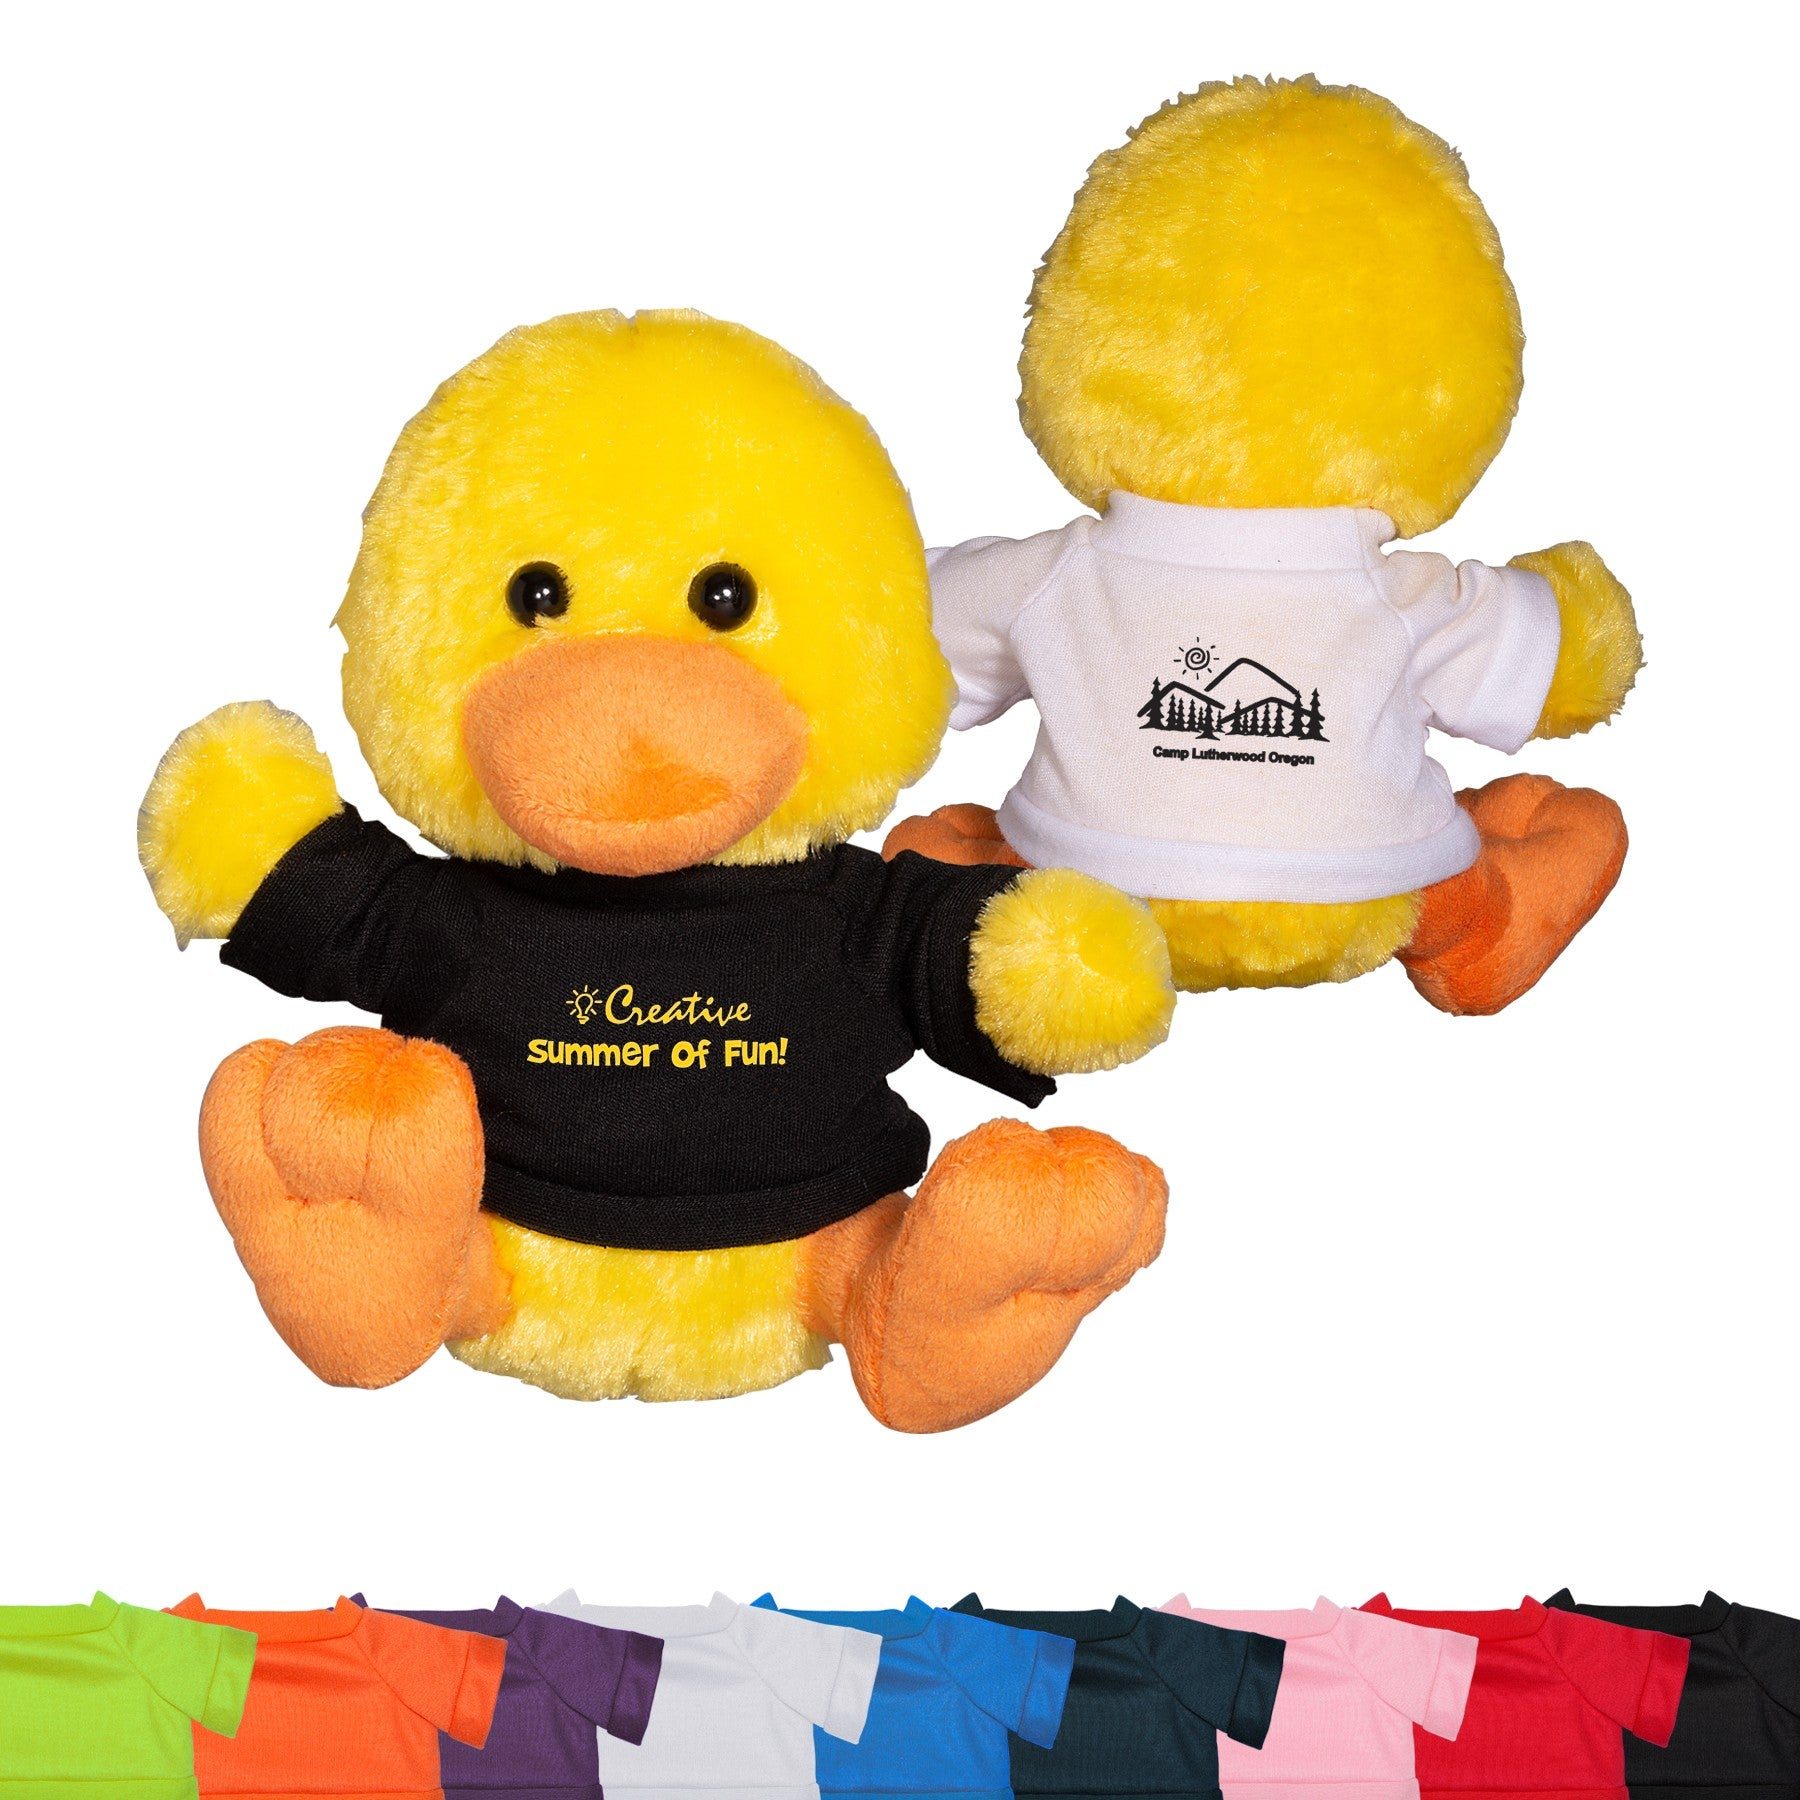 "PRIMELINE 7"" PLUSH DUCK WITH SHIRT"